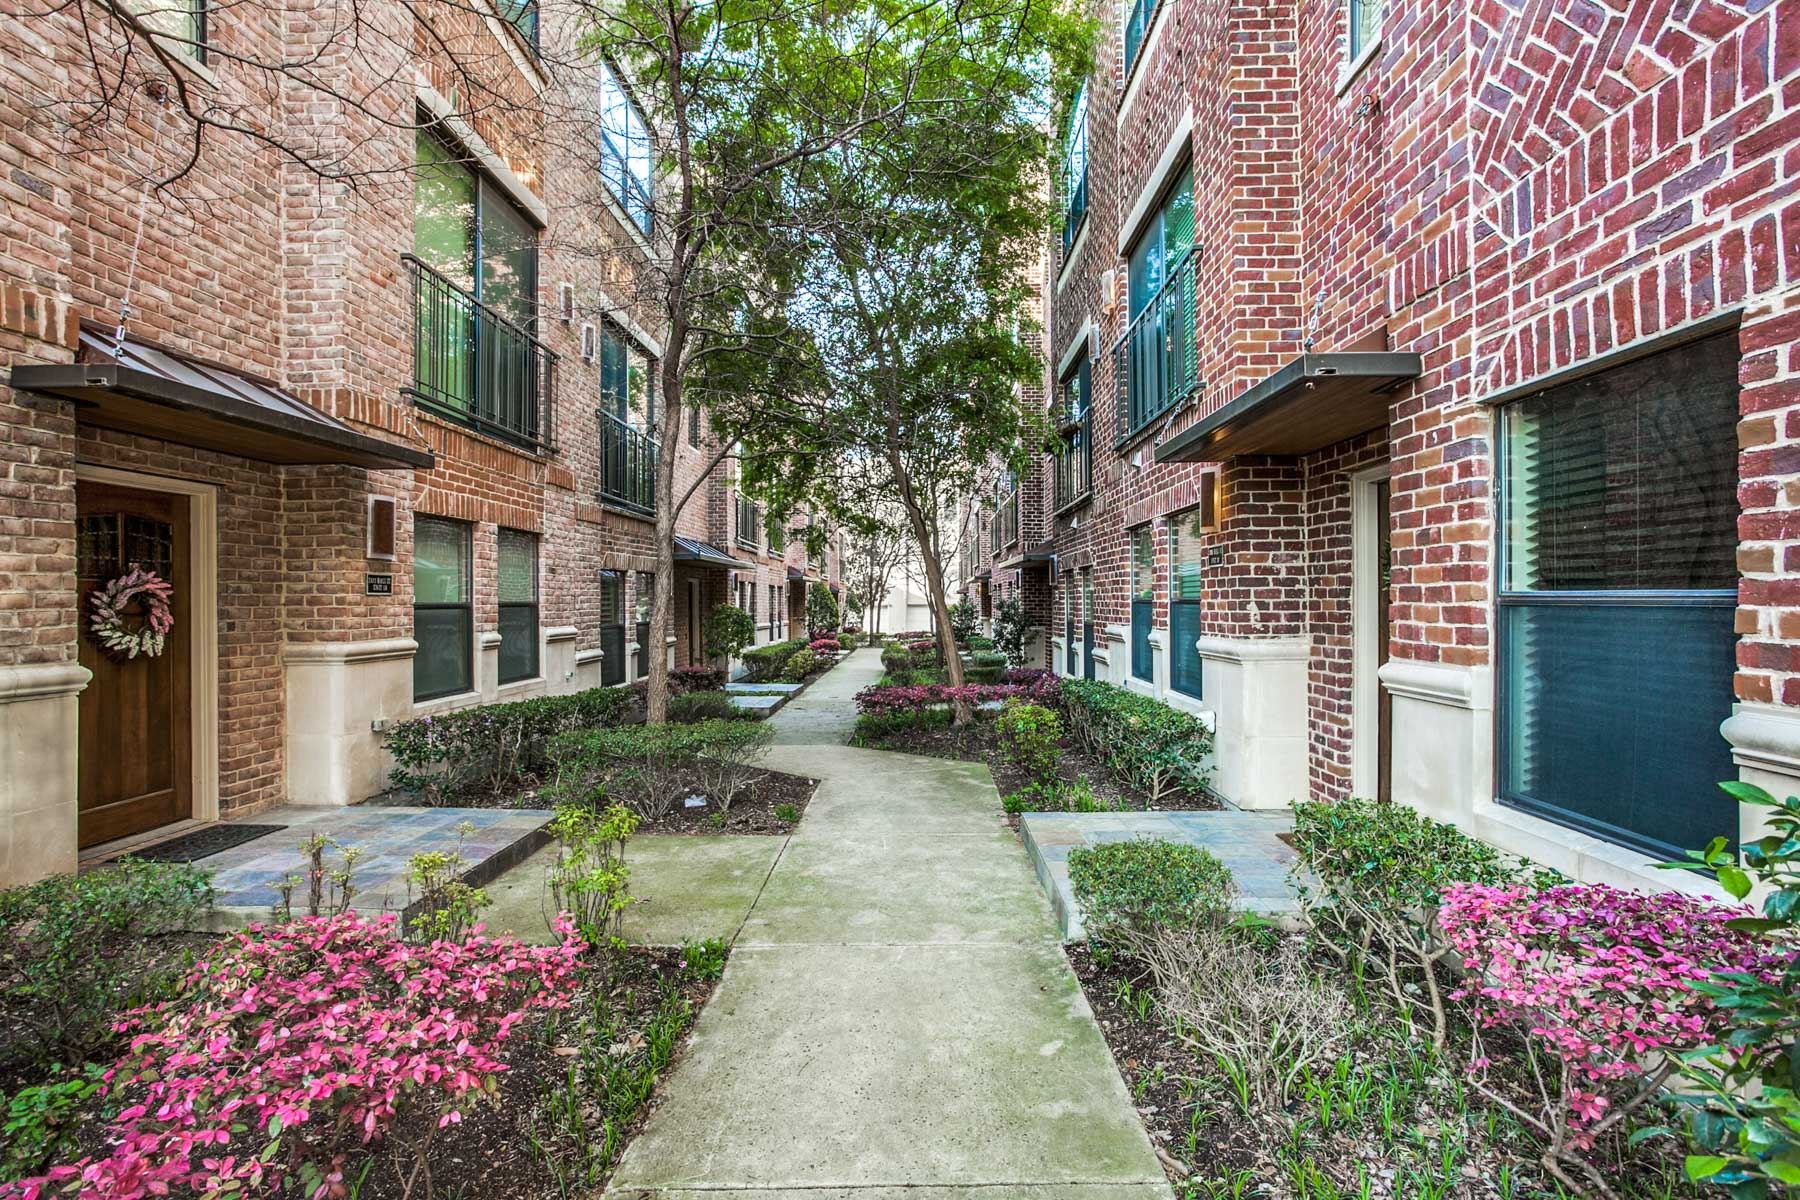 Single Family Home for Sale at Tasteful Townhome in Uptown 2411 N Hall St 19 Dallas, Texas, 75204 United States